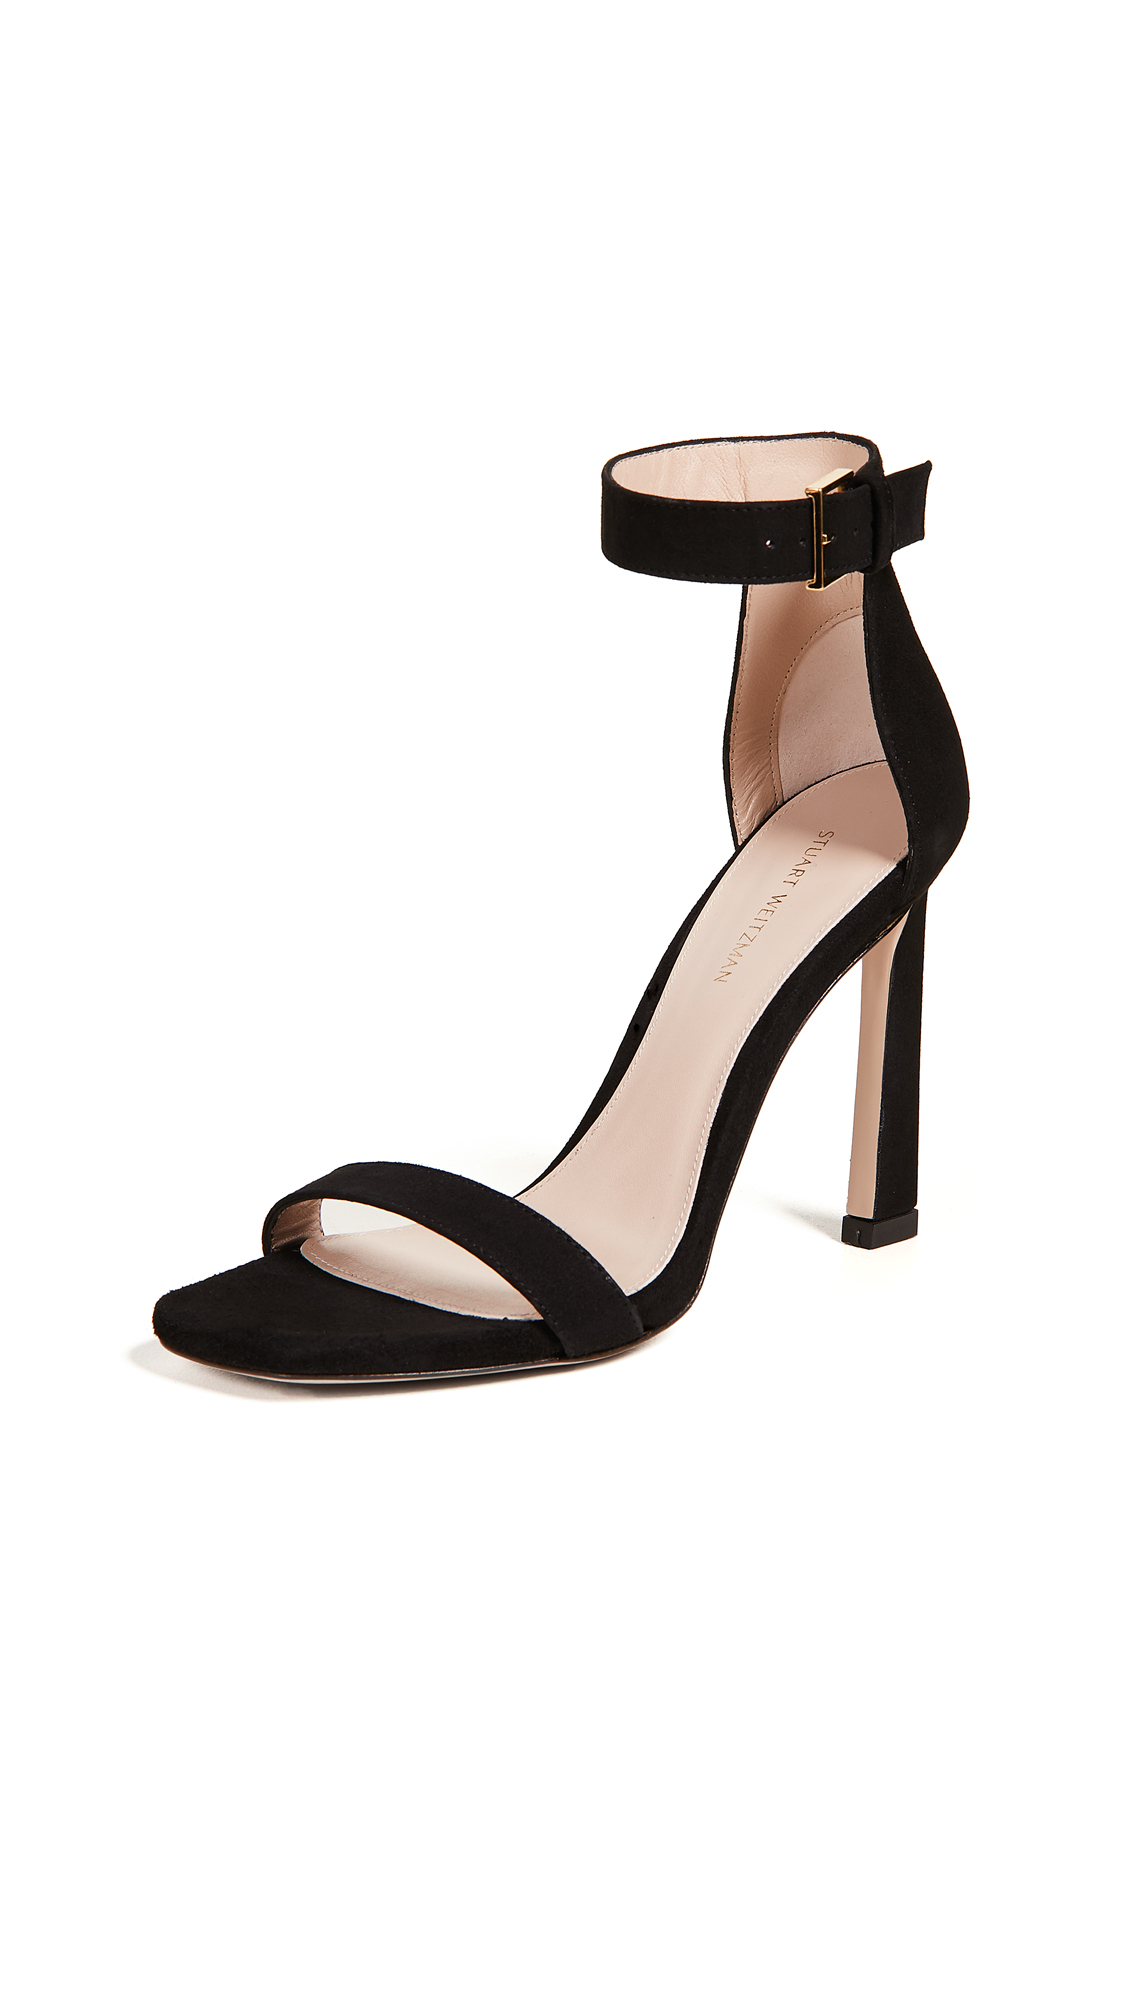 Stuart Weitzman Square Nudist 100mm Sandals - Black